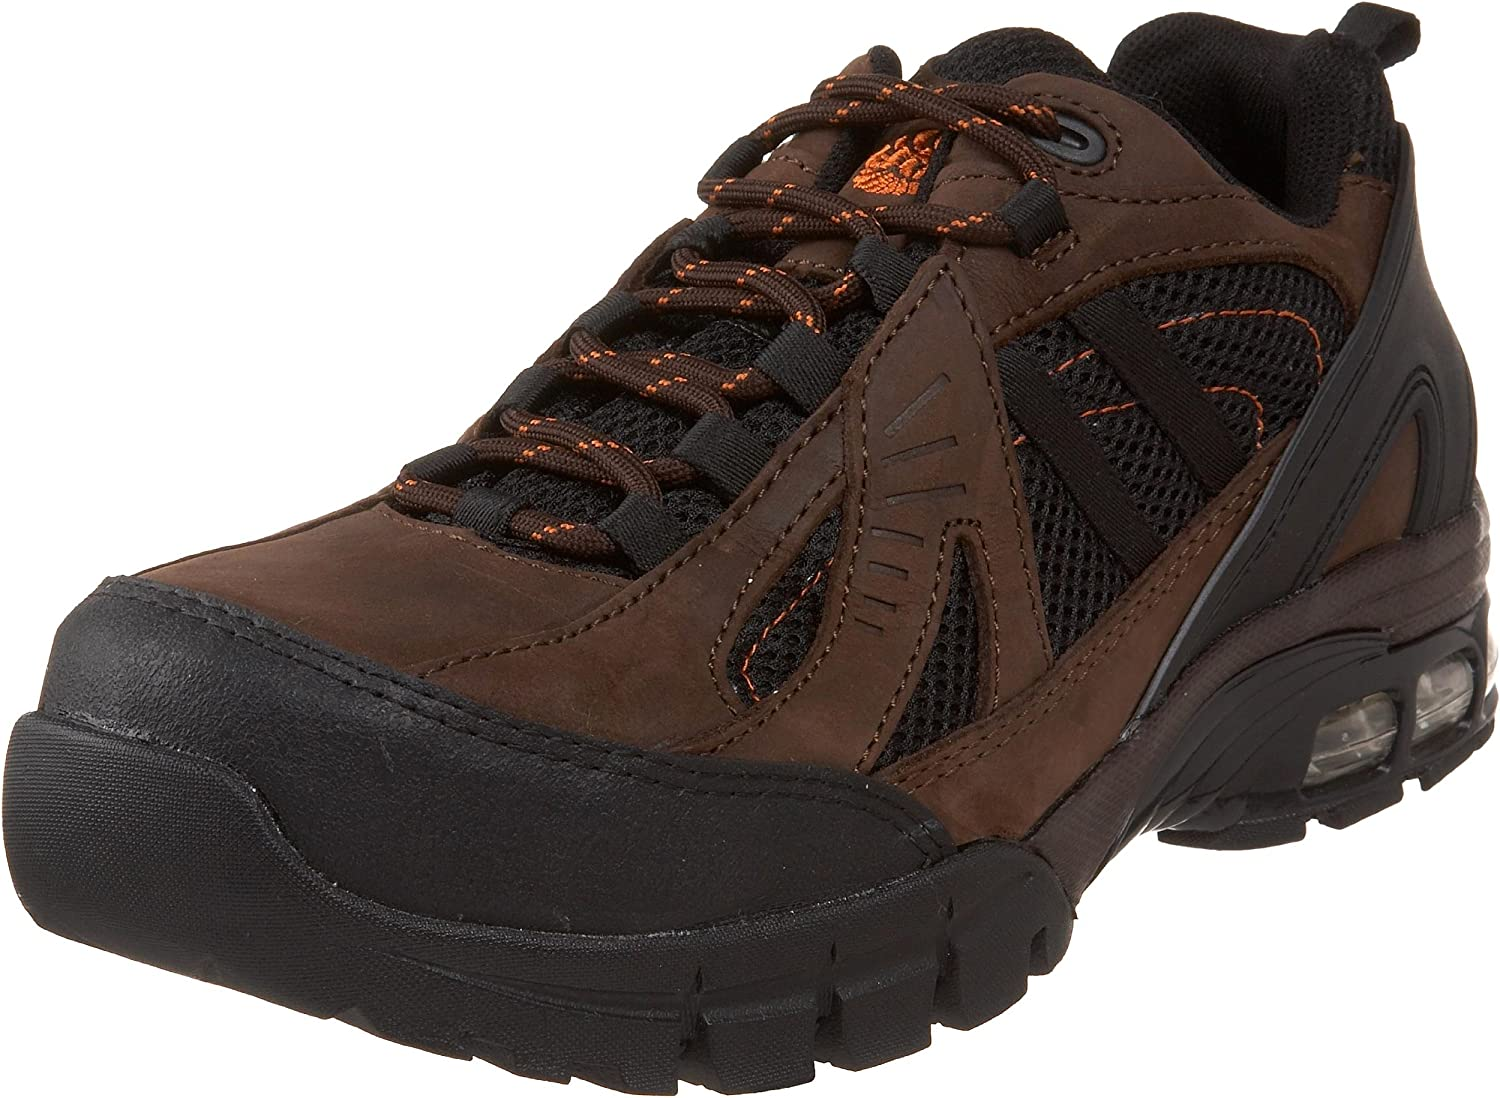 Nautilus Safety Footwear Specialty EH N1700 Comp Virginia Beach Mall Quantity limited Toe Men's Athle